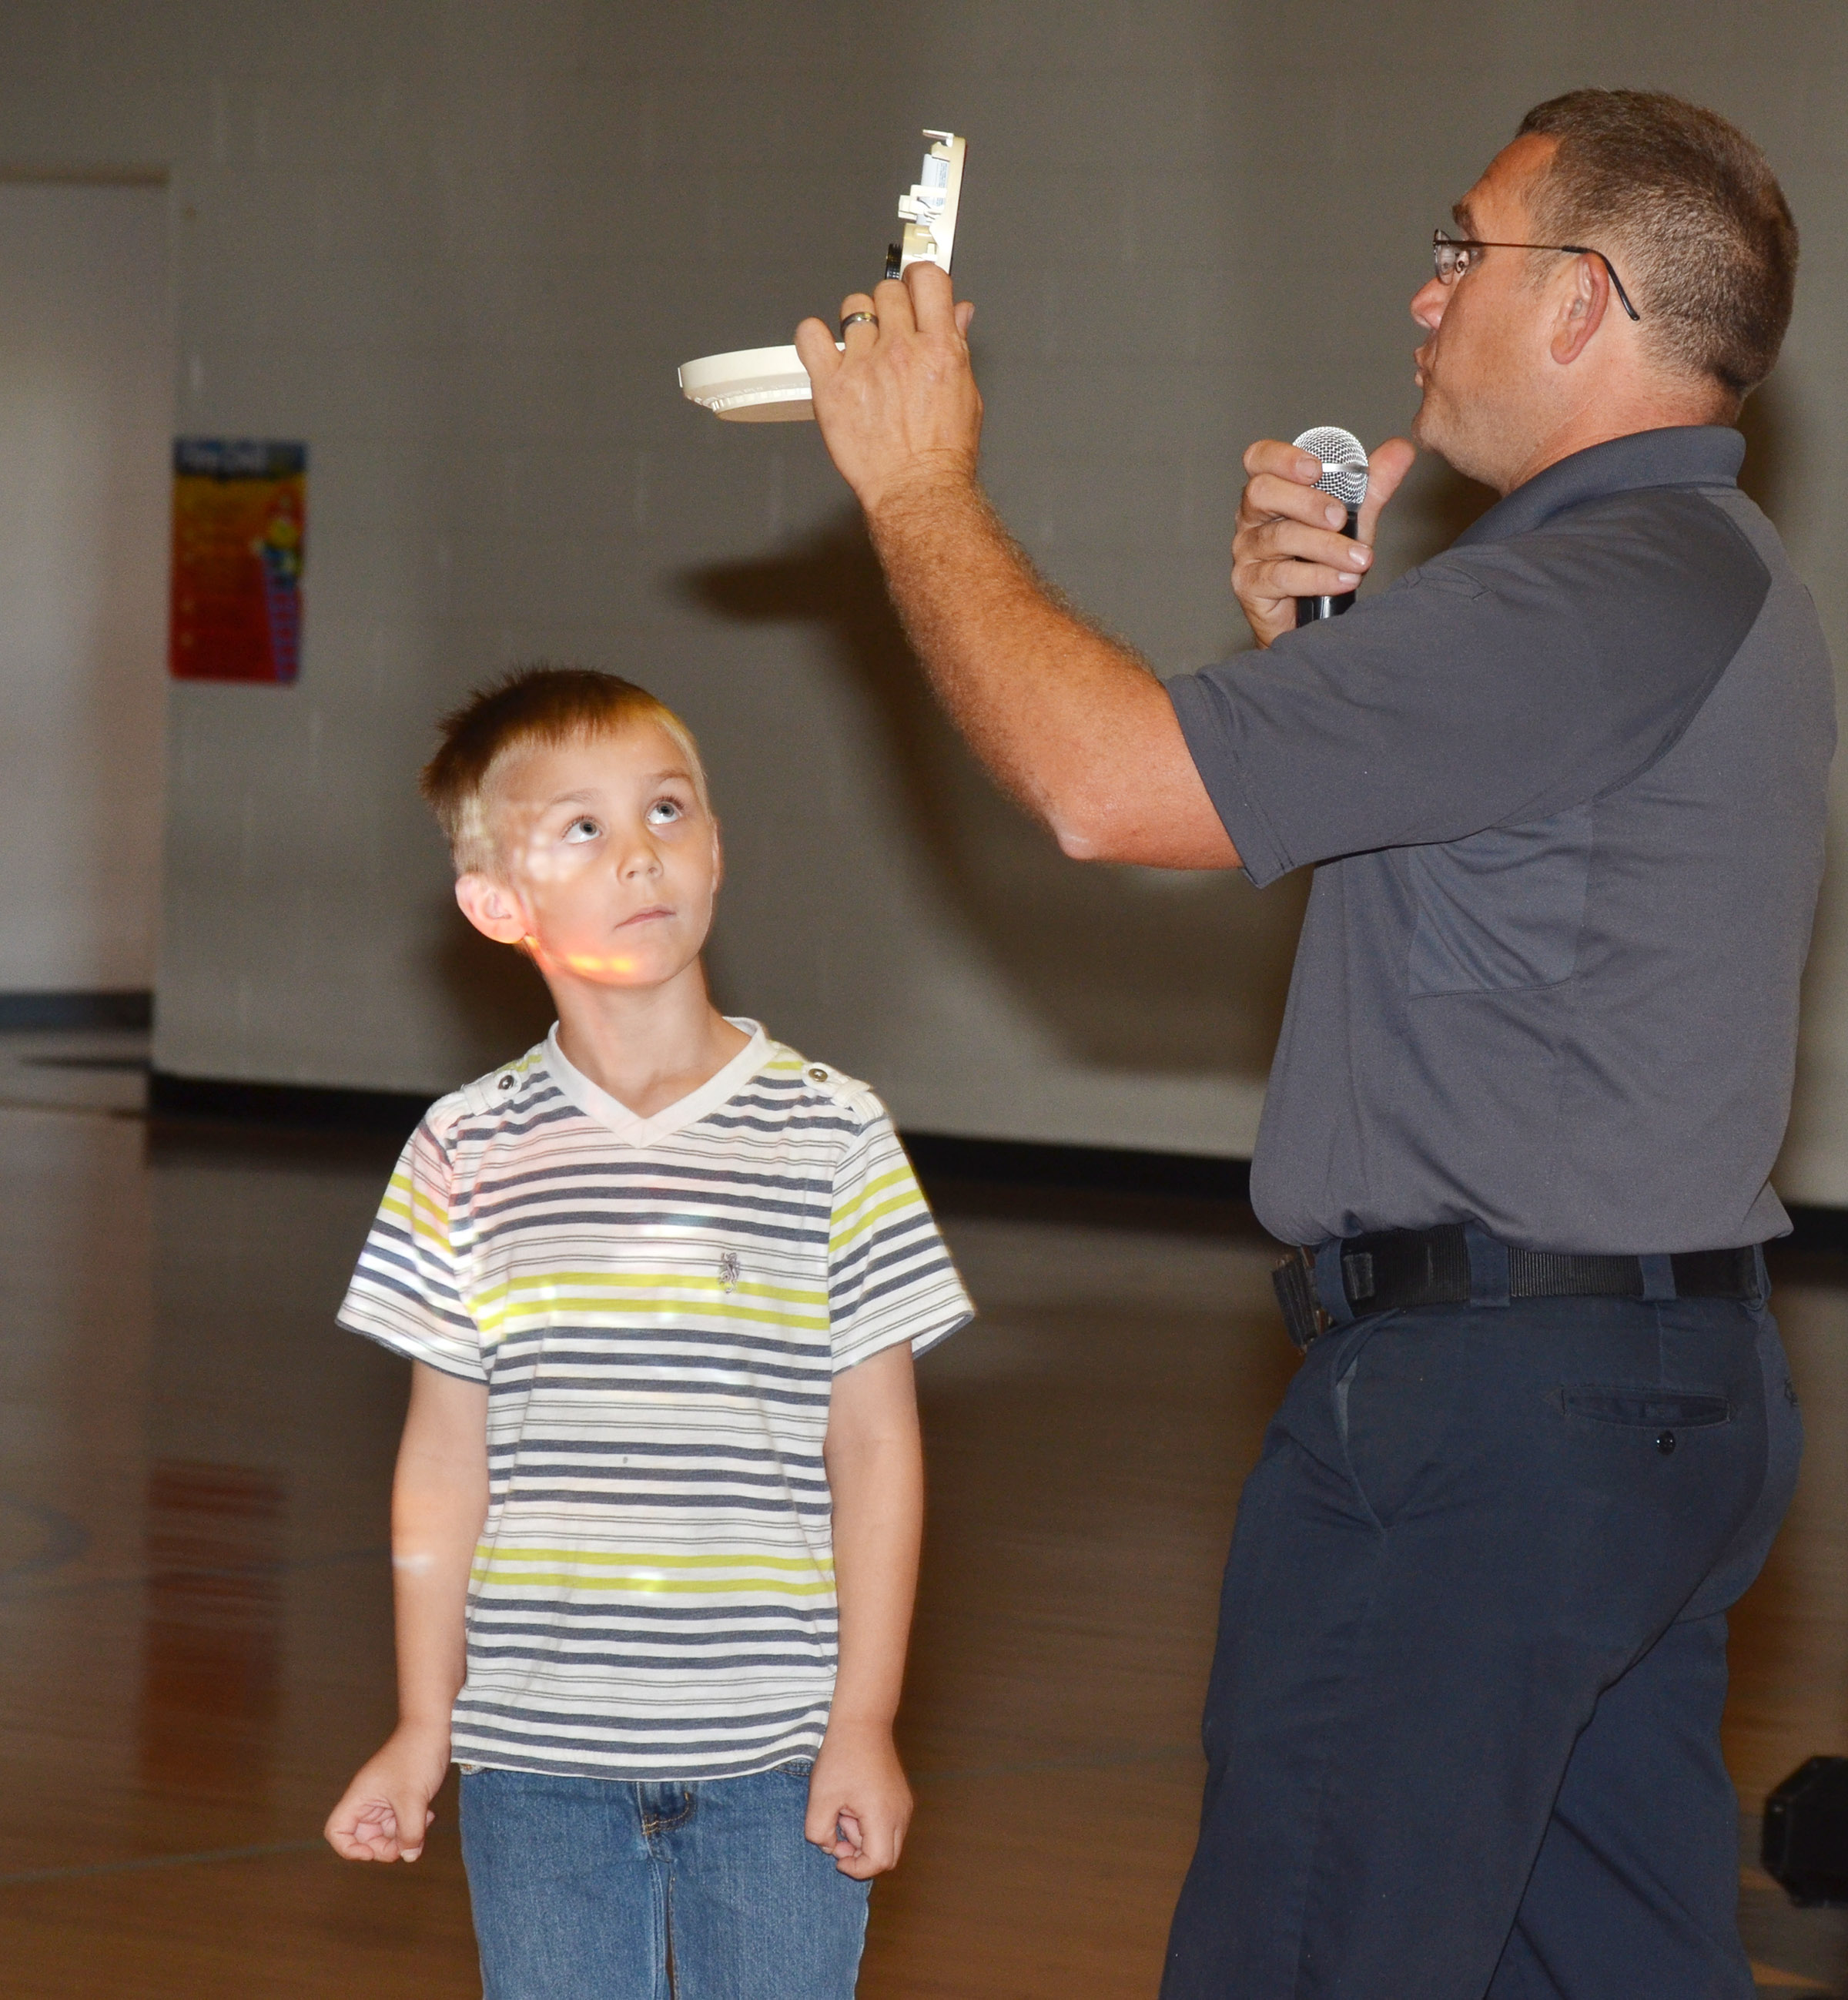 Campbellsville Fire & Rescue Captain Keith Bricken talks to CES second-grader Hunter Bates about the proper way to check the battery in a smoke detector.